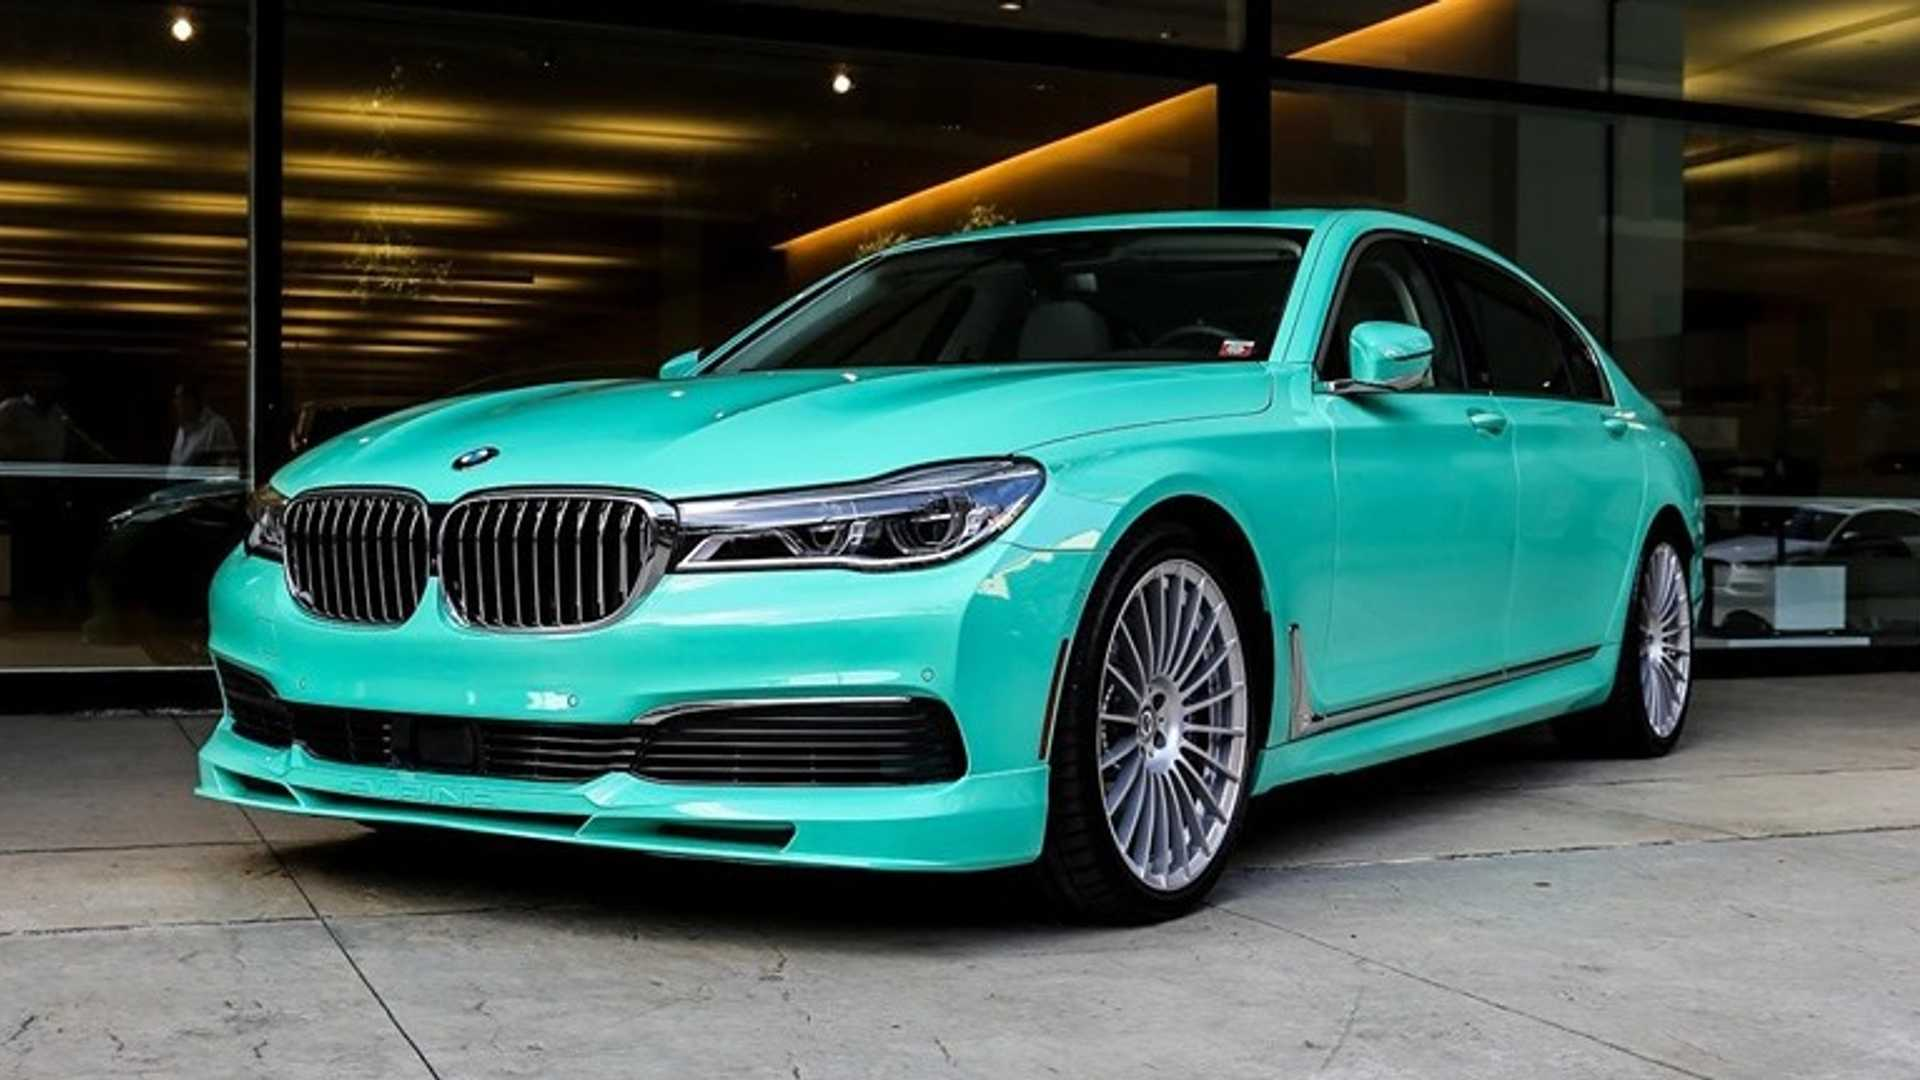 One Off Alpina B7 In Mint Green Delivered To U S Customer